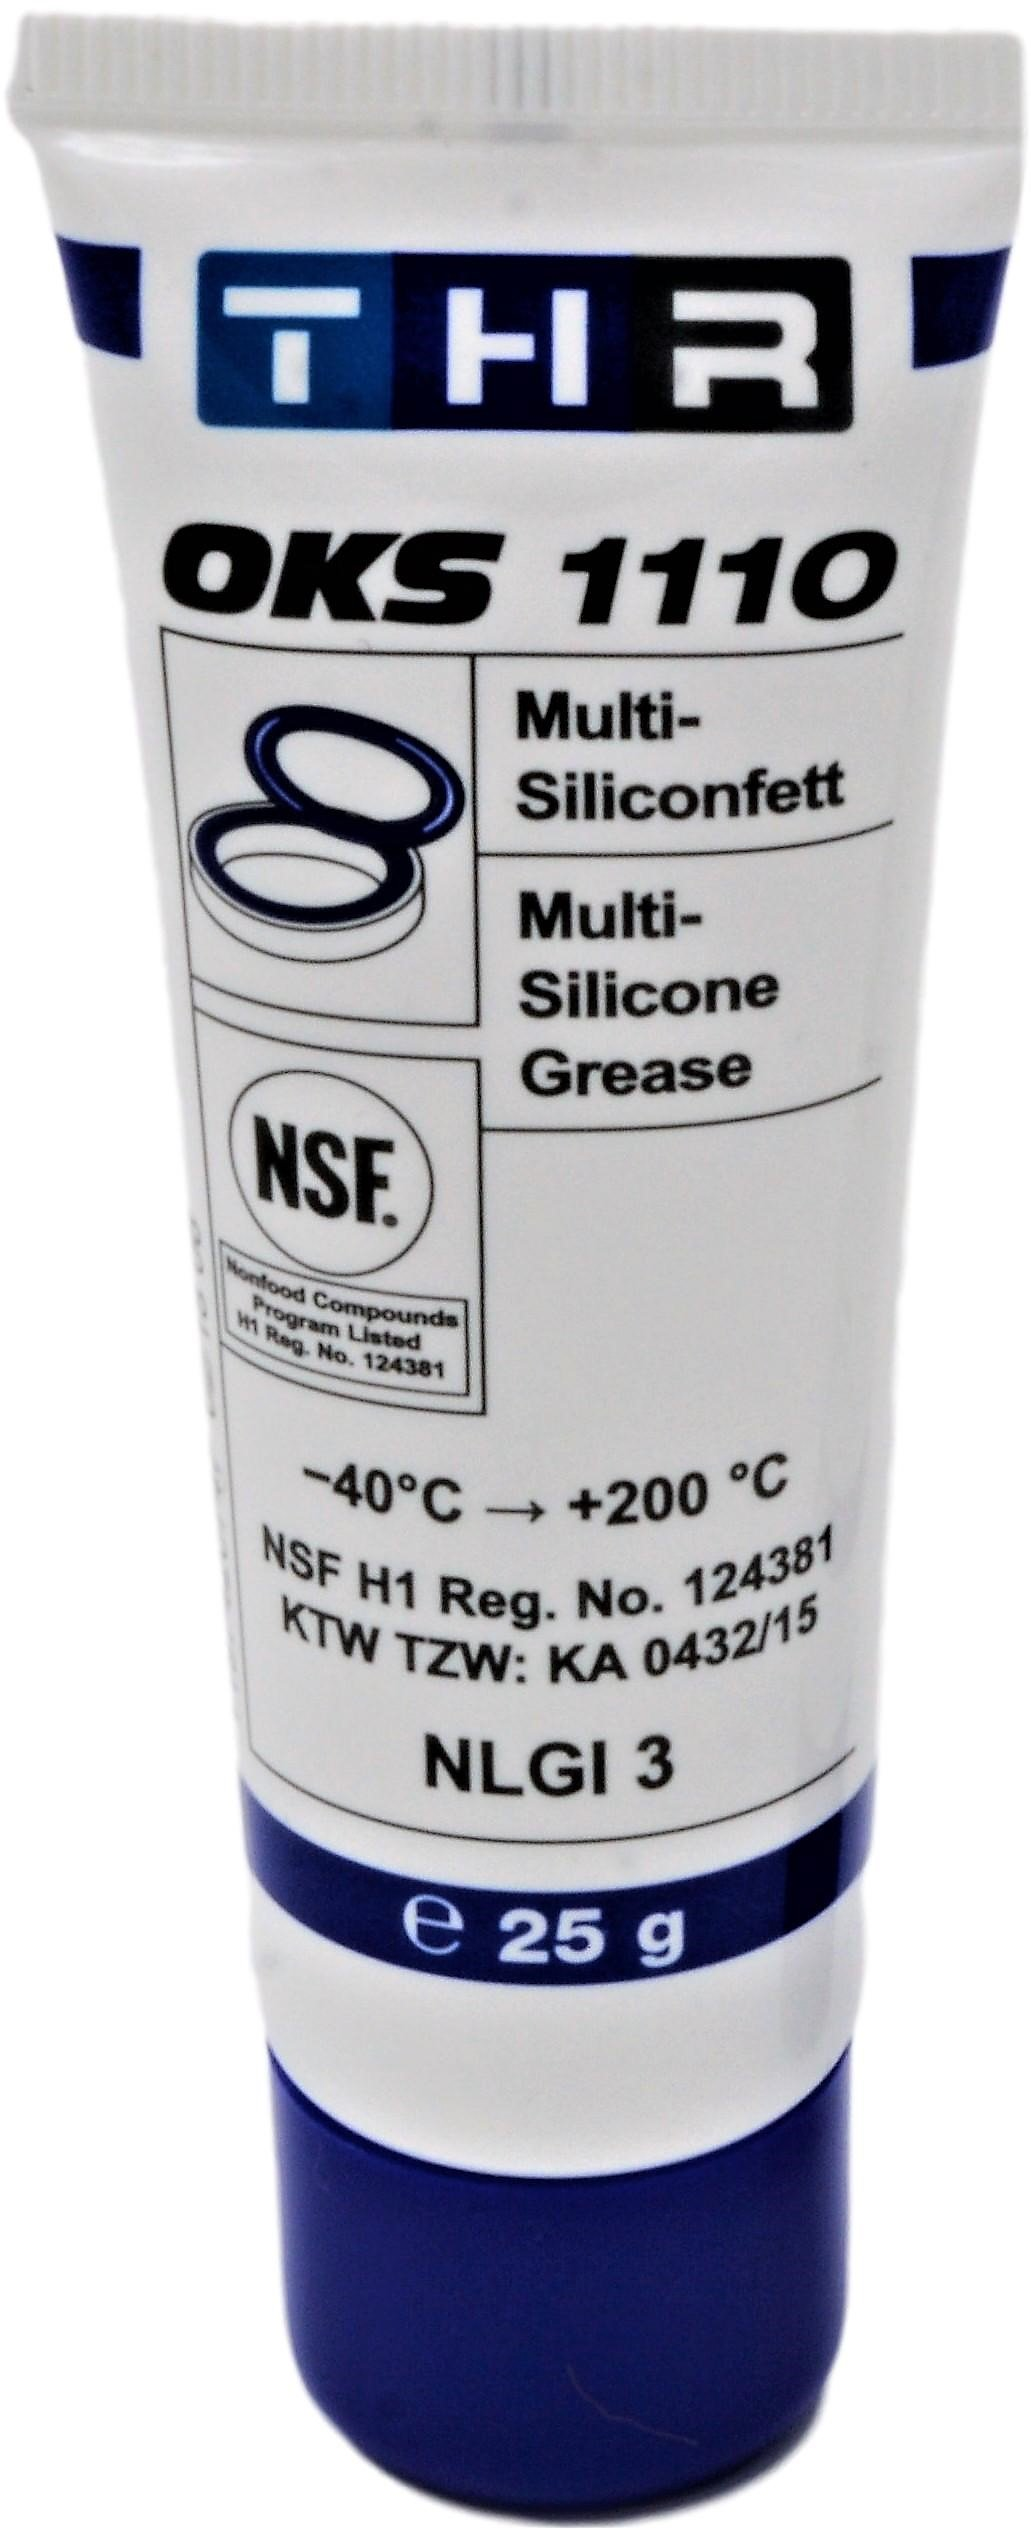 FilterLogic Silicone Grease for Coffee Machine O-Ring Seals /& Gaskets 10g Tube